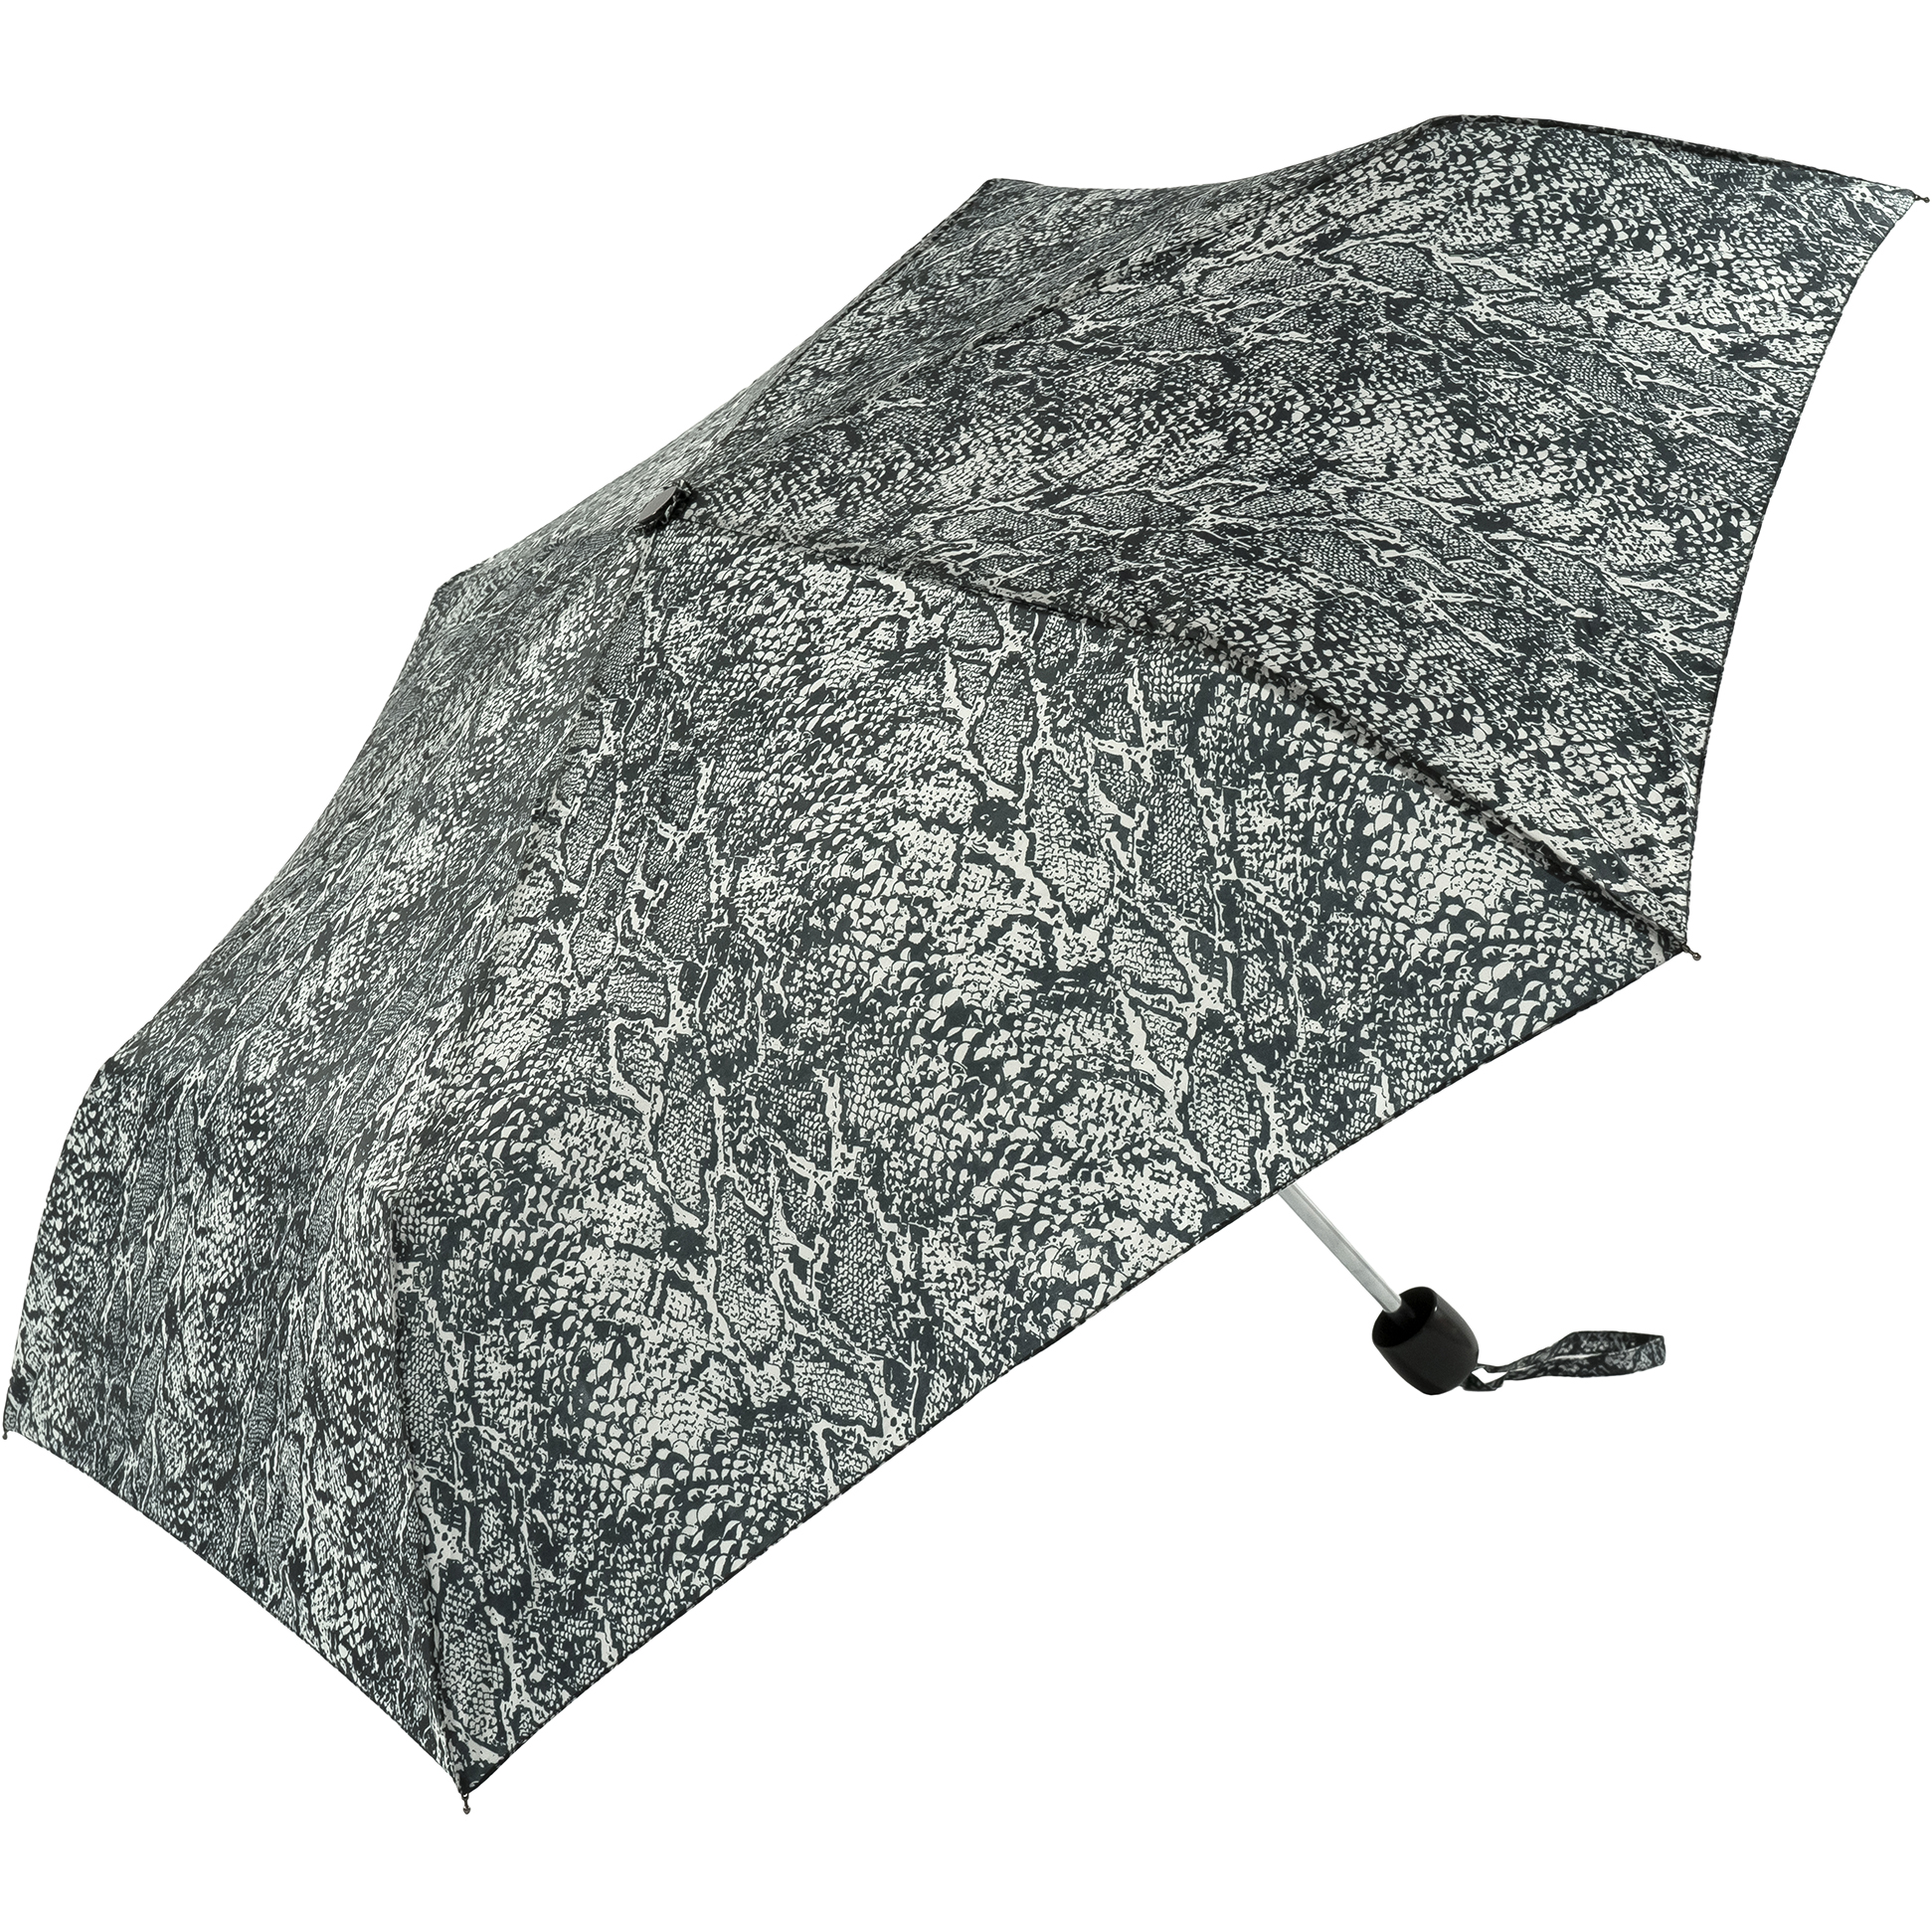 Snakeskin Women's Compact Umbrella (31099)